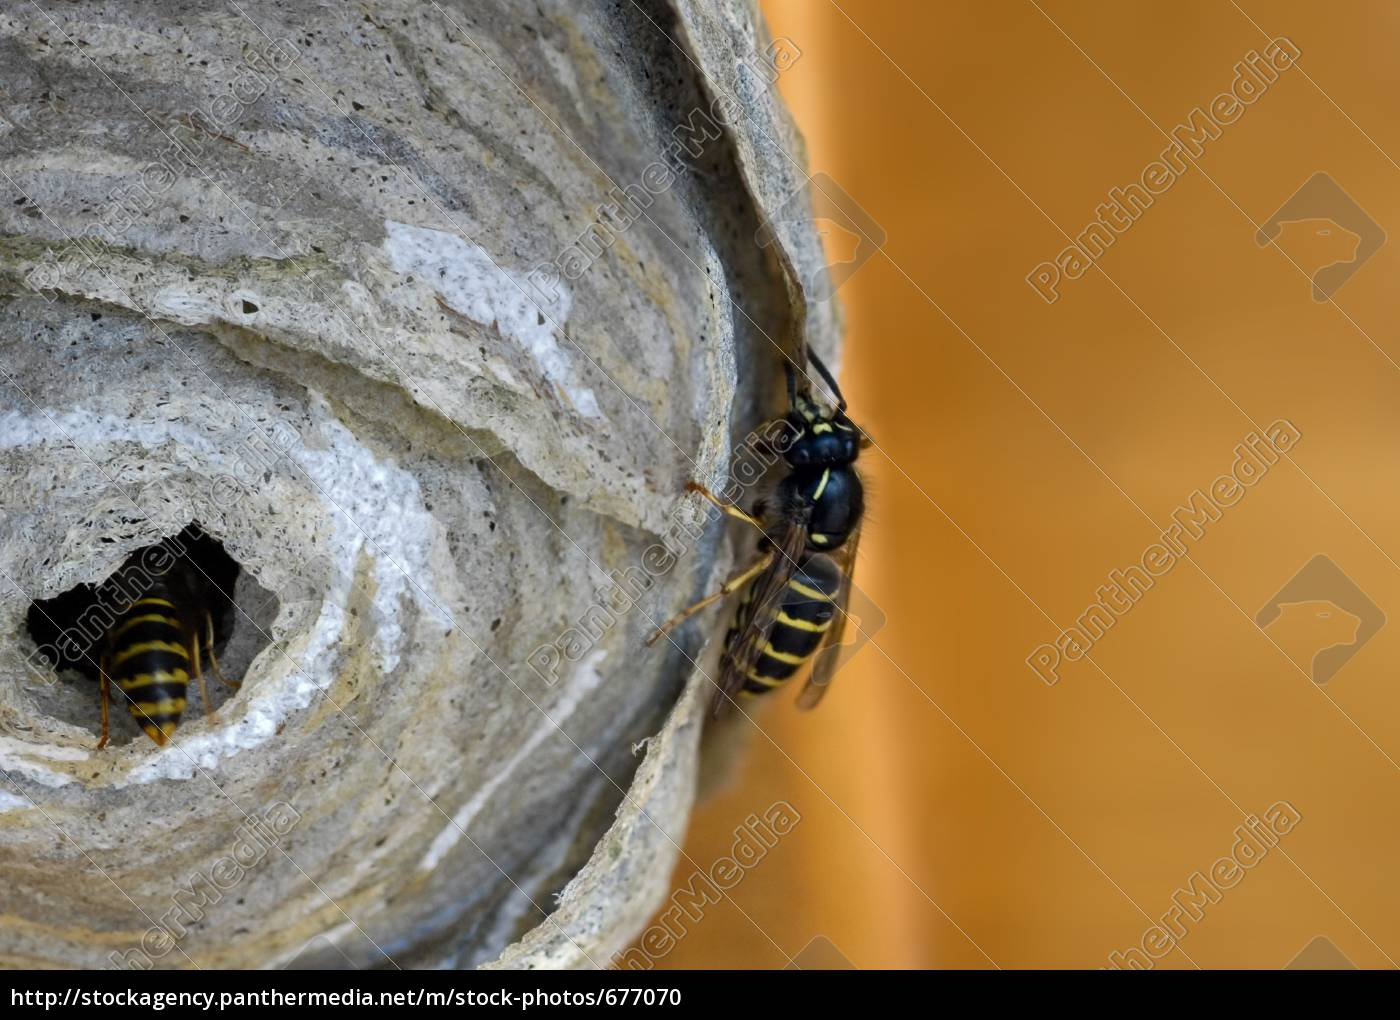 the, creation, of, a, wasps, nest - 677070